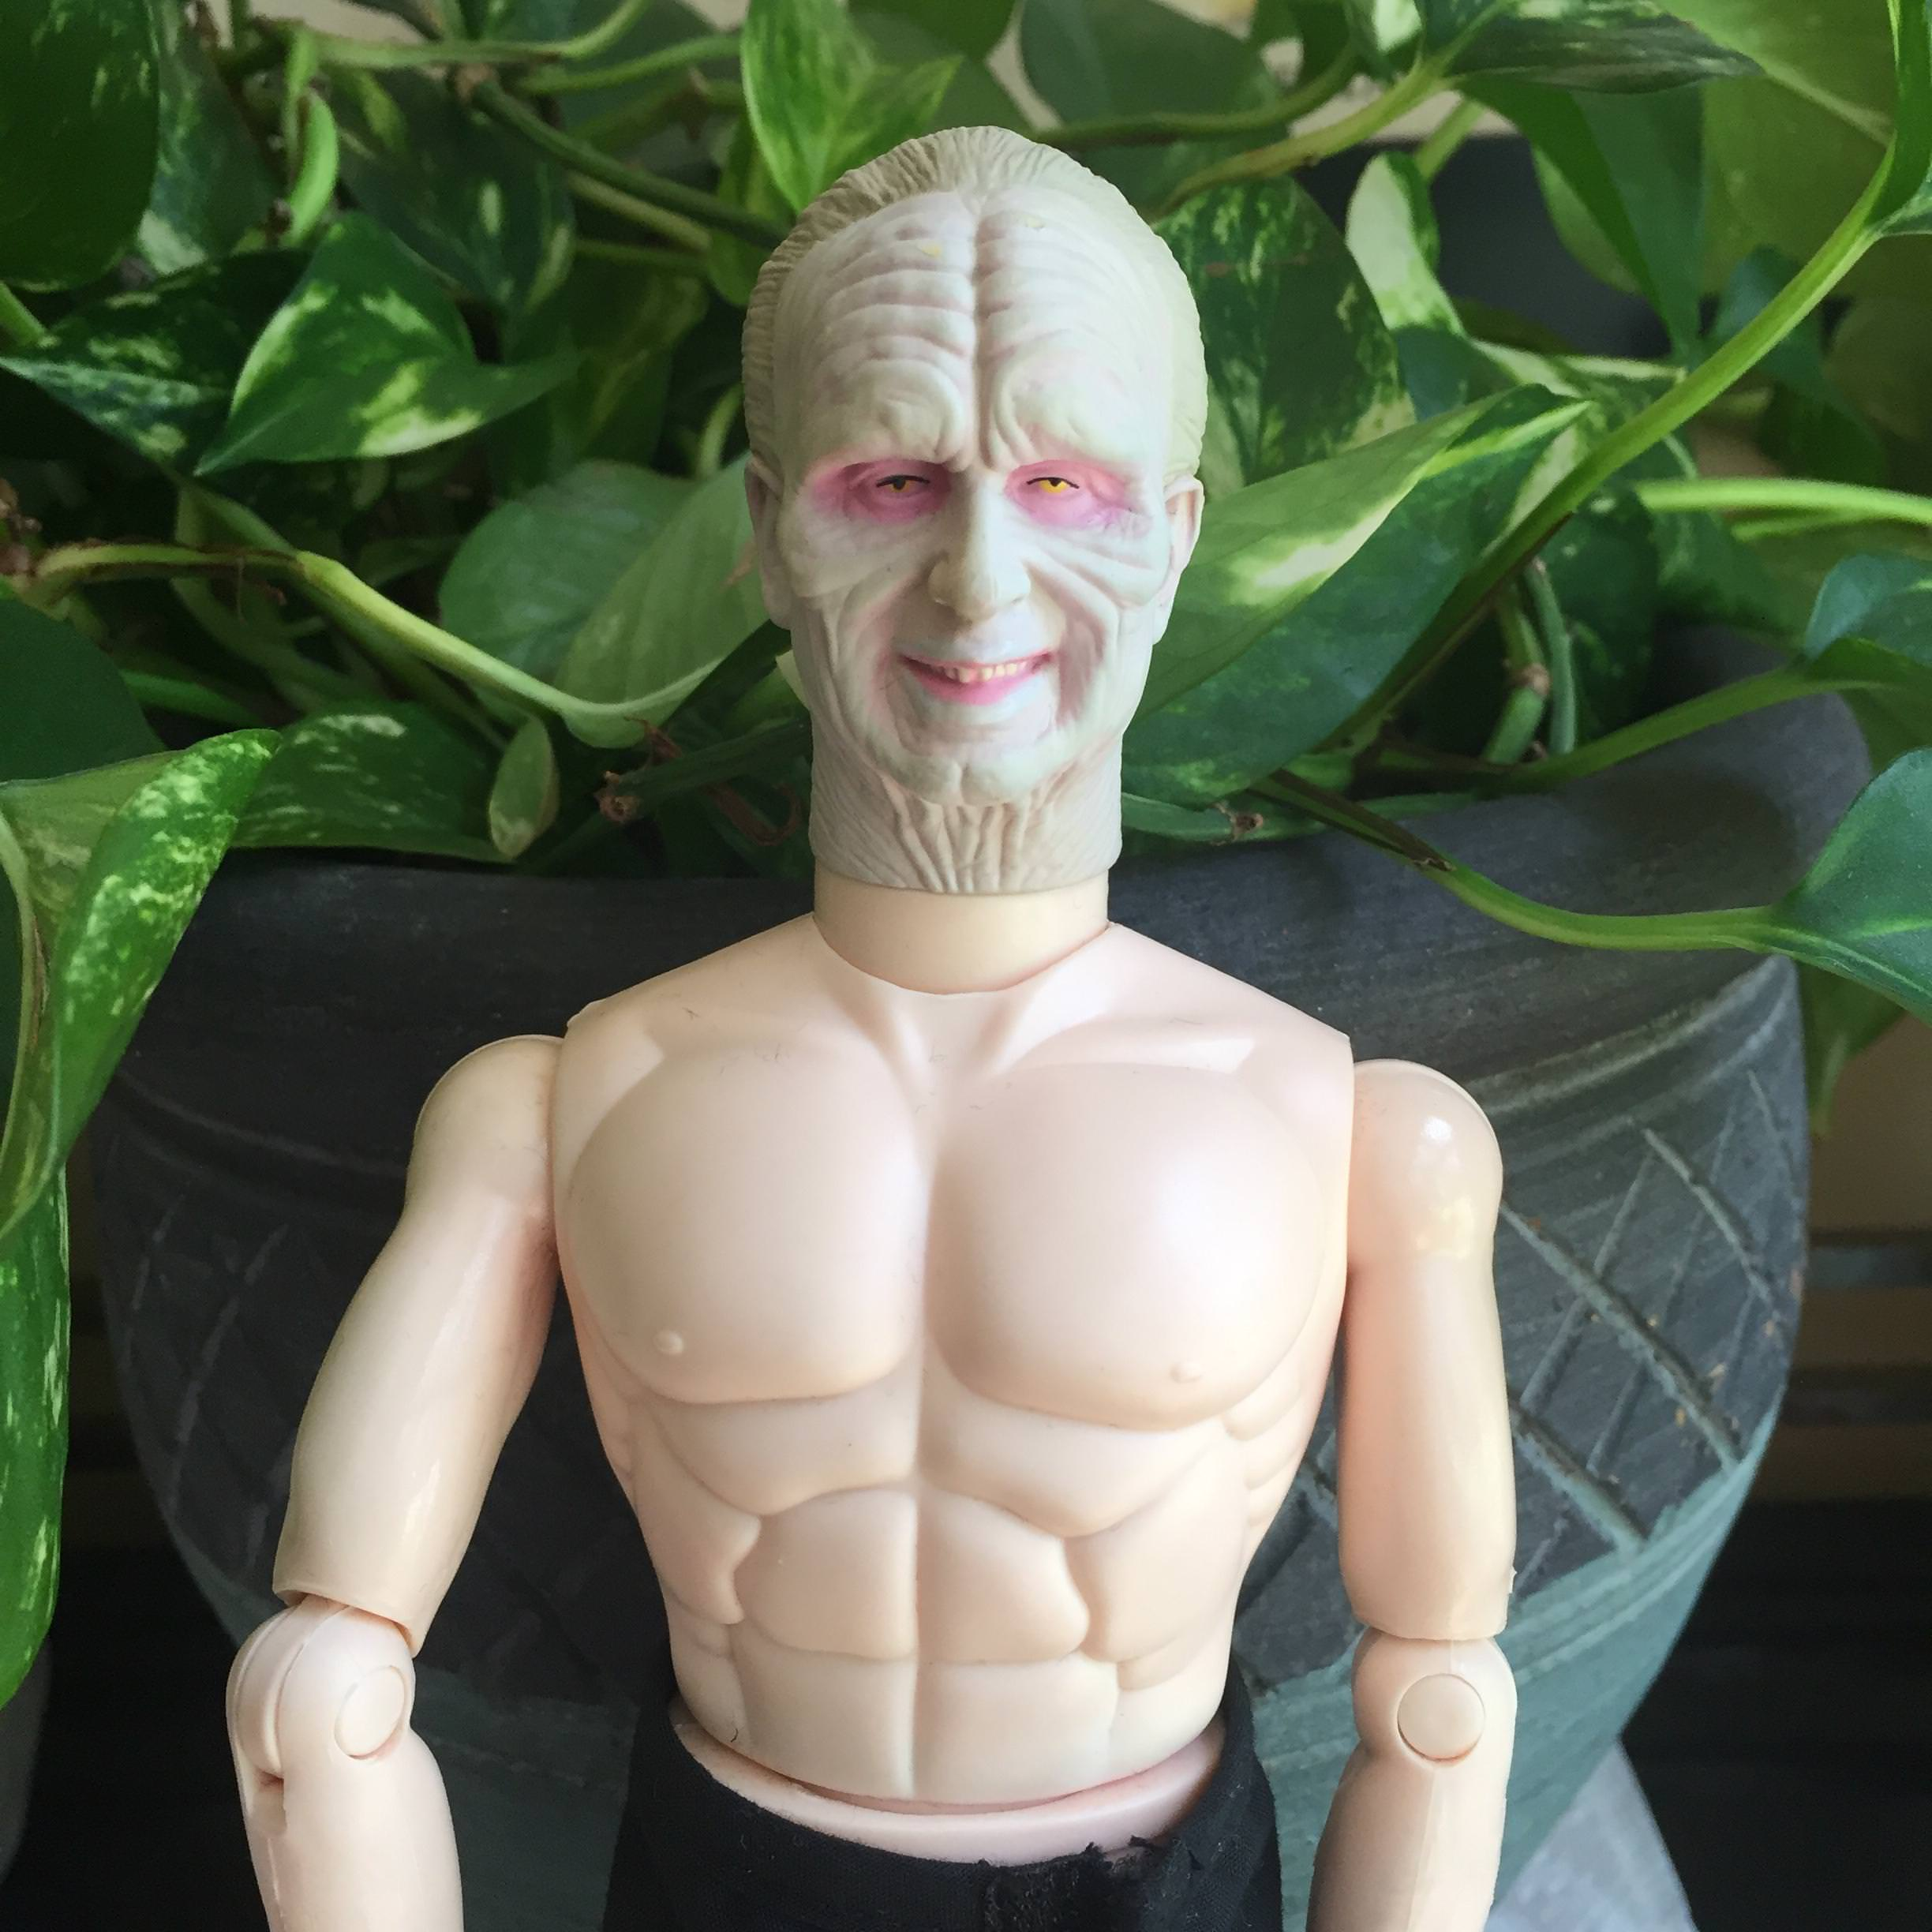 Never realized Palpatine was so ripped